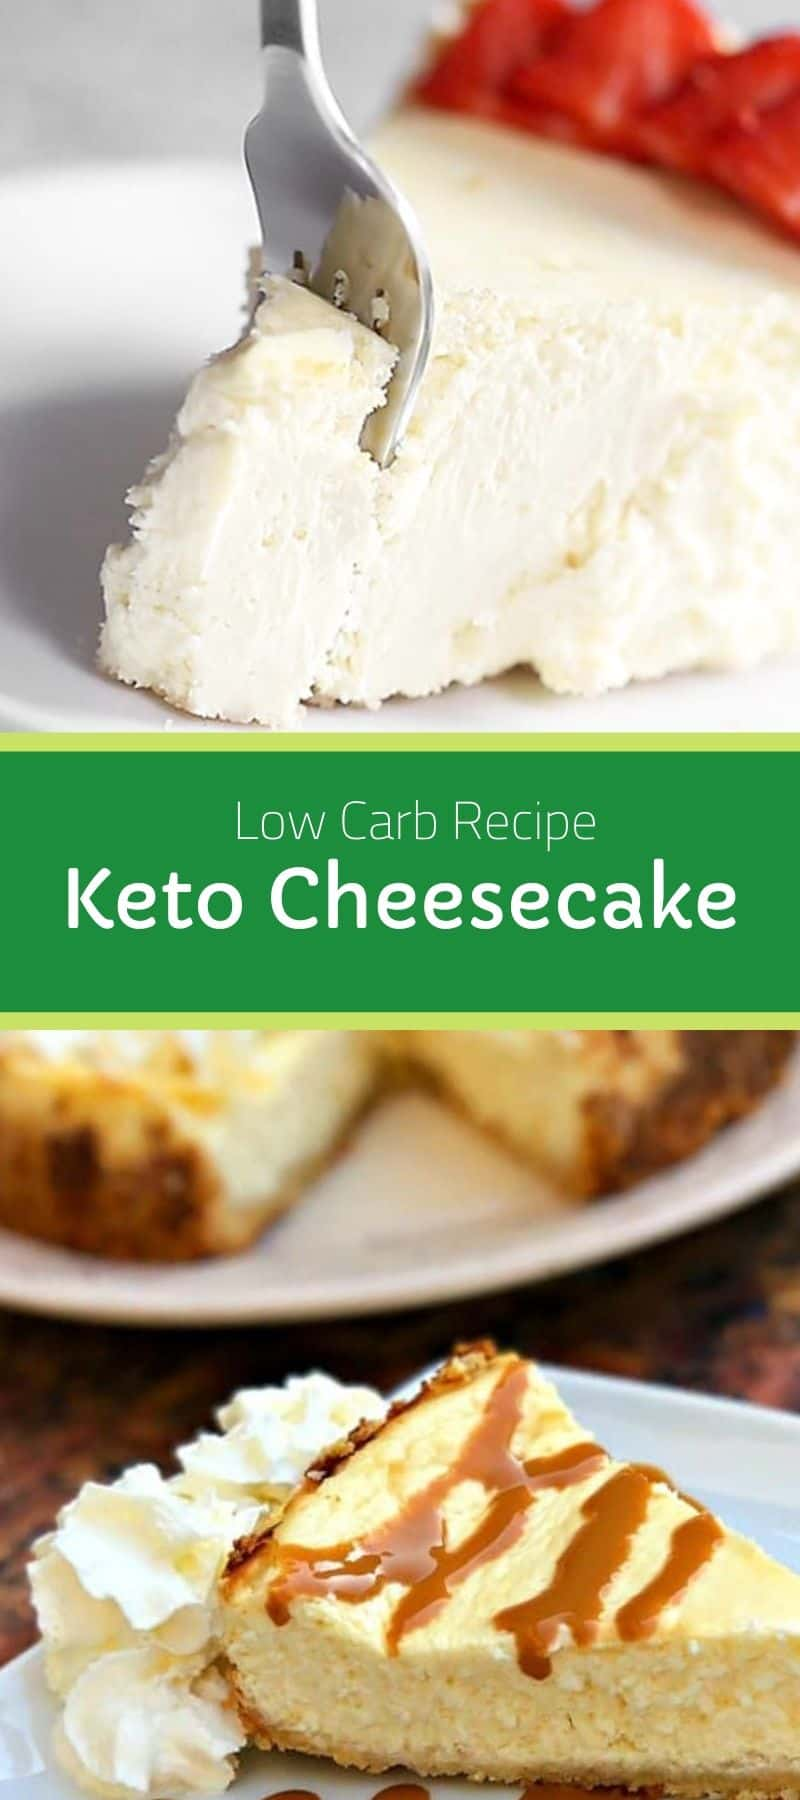 Low Carb Keto Cheesecake Recipe 3